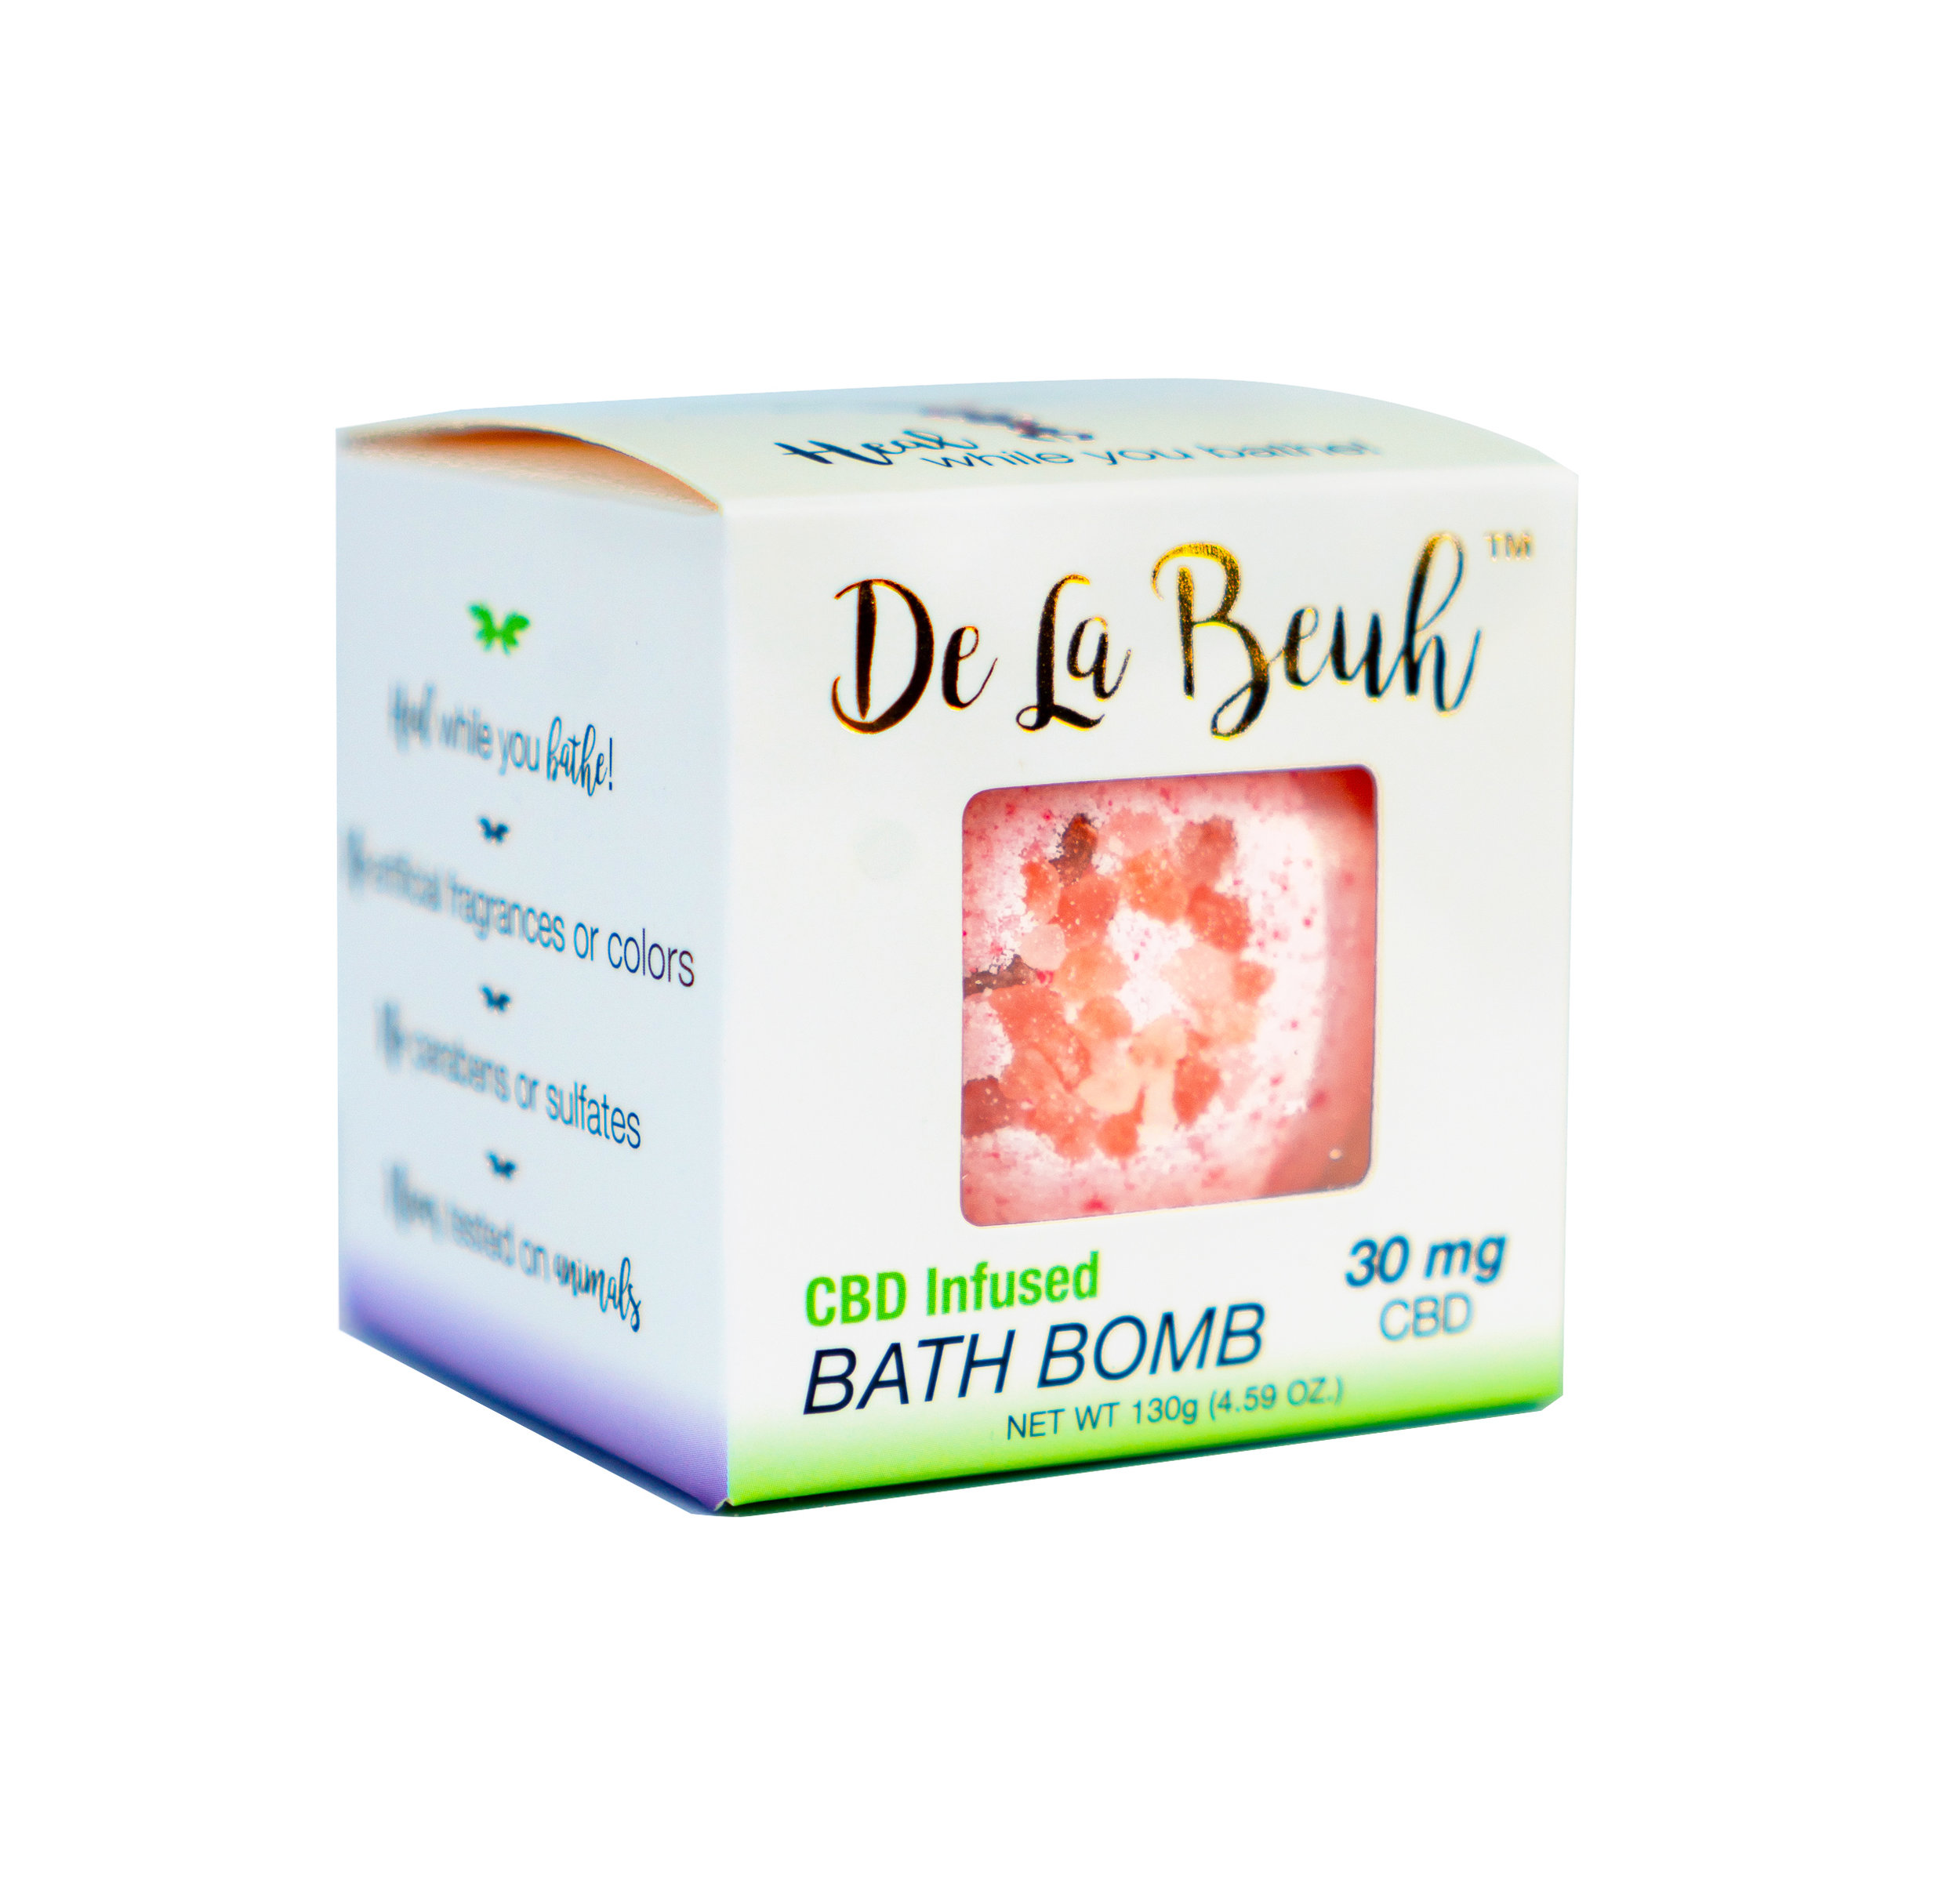 1.   De La Beuh Bath Bomb    Give your mother the ultimate relaxation with a De La Beuh CBD bath bomb. You know how hard your mom works, if you want to show her how proud of her you are for everything she has done for you then this is the perfect gift. These pain relieving bath bombs are handcrafted with organic ingredients and they are even cruelty free! For an amped up gift get her the De La Beuh coffee scrub and skin oil too!